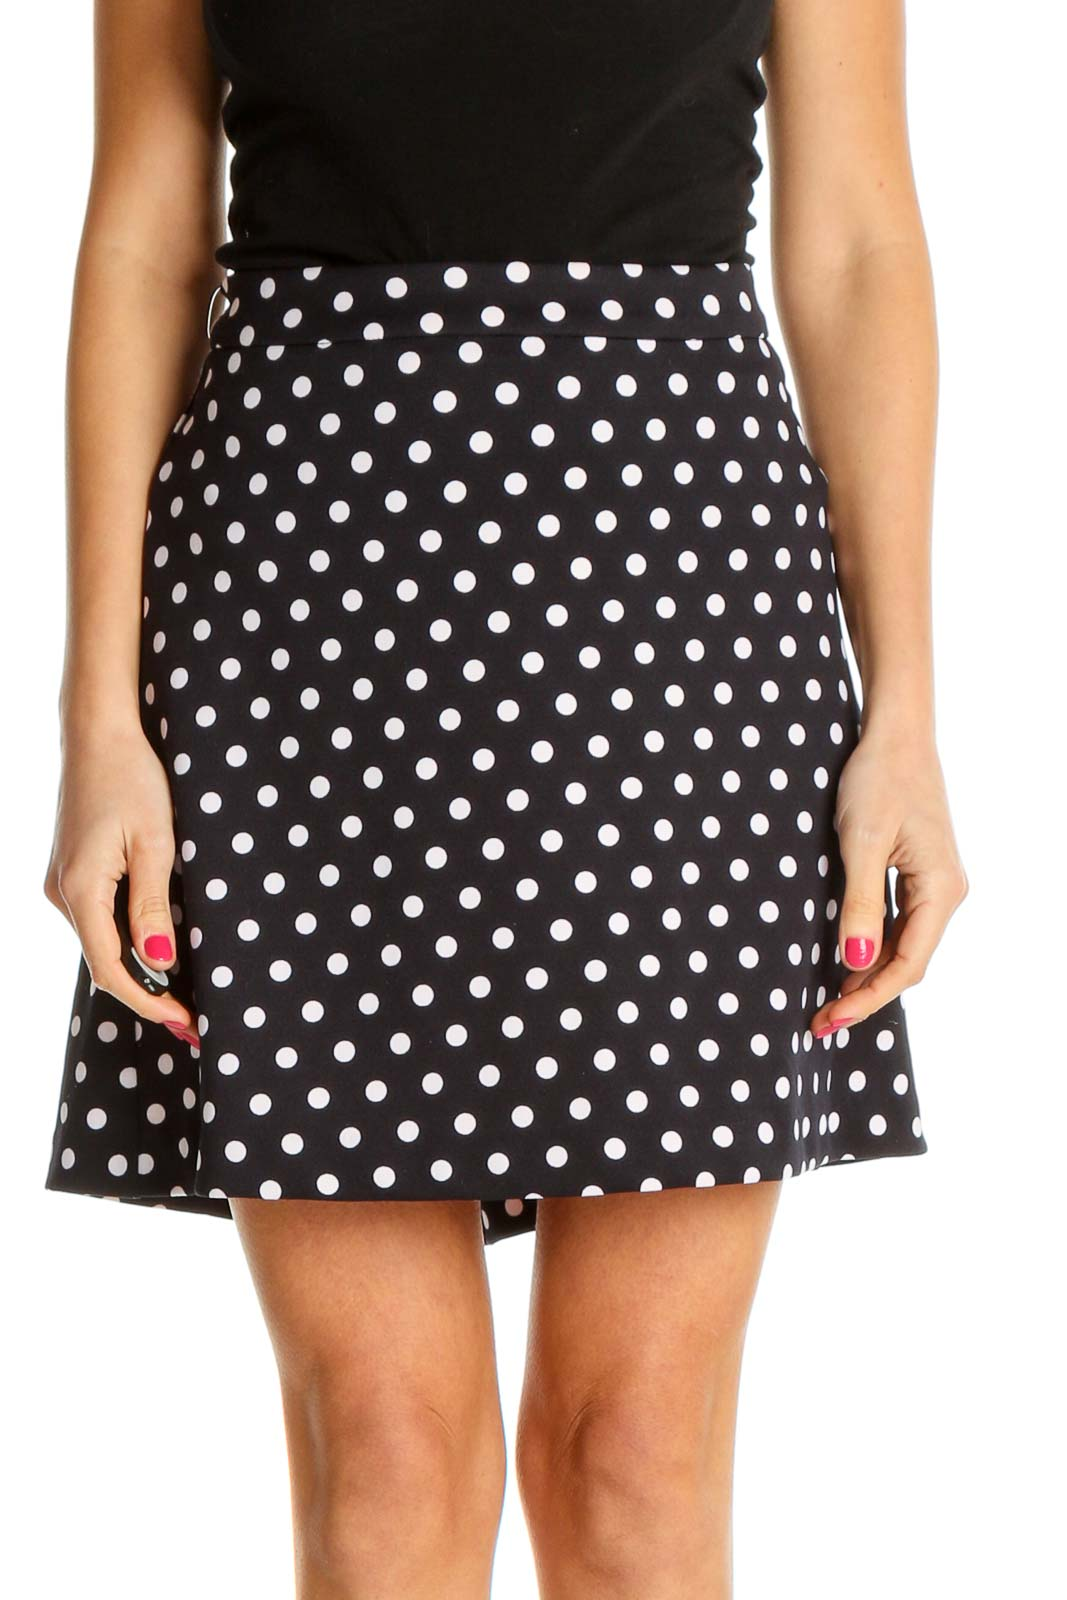 Blue Polka Dot Retro A-Line Skirt Front